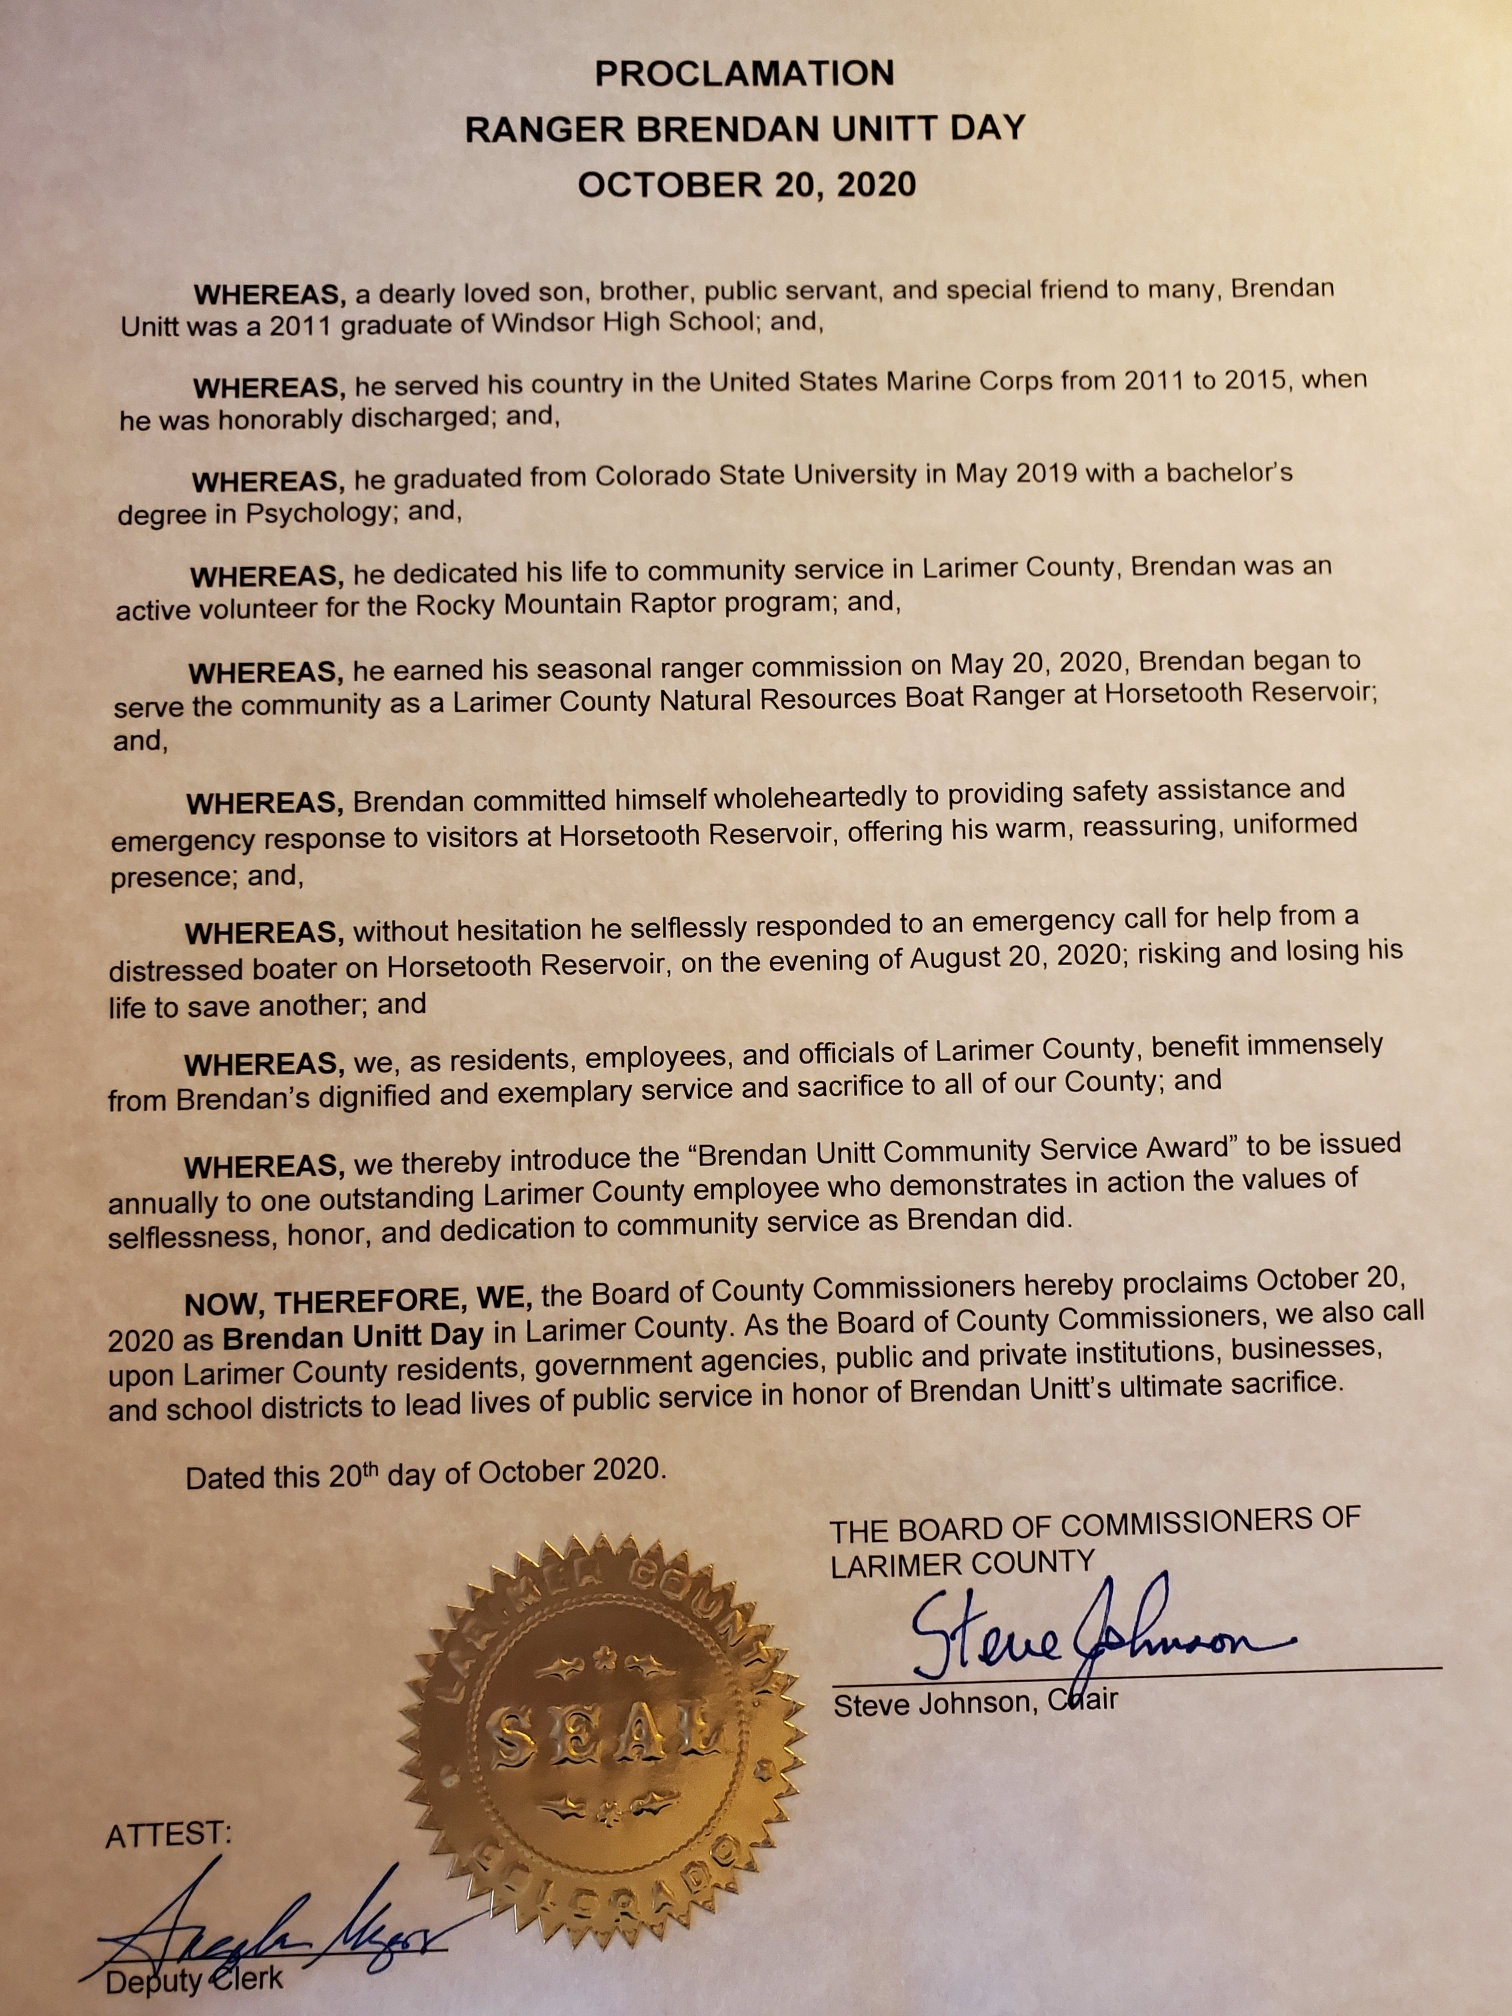 Image 1: Signed Proclamation issued October 20, 2020 as Brendan Unitt Day in Larimer County